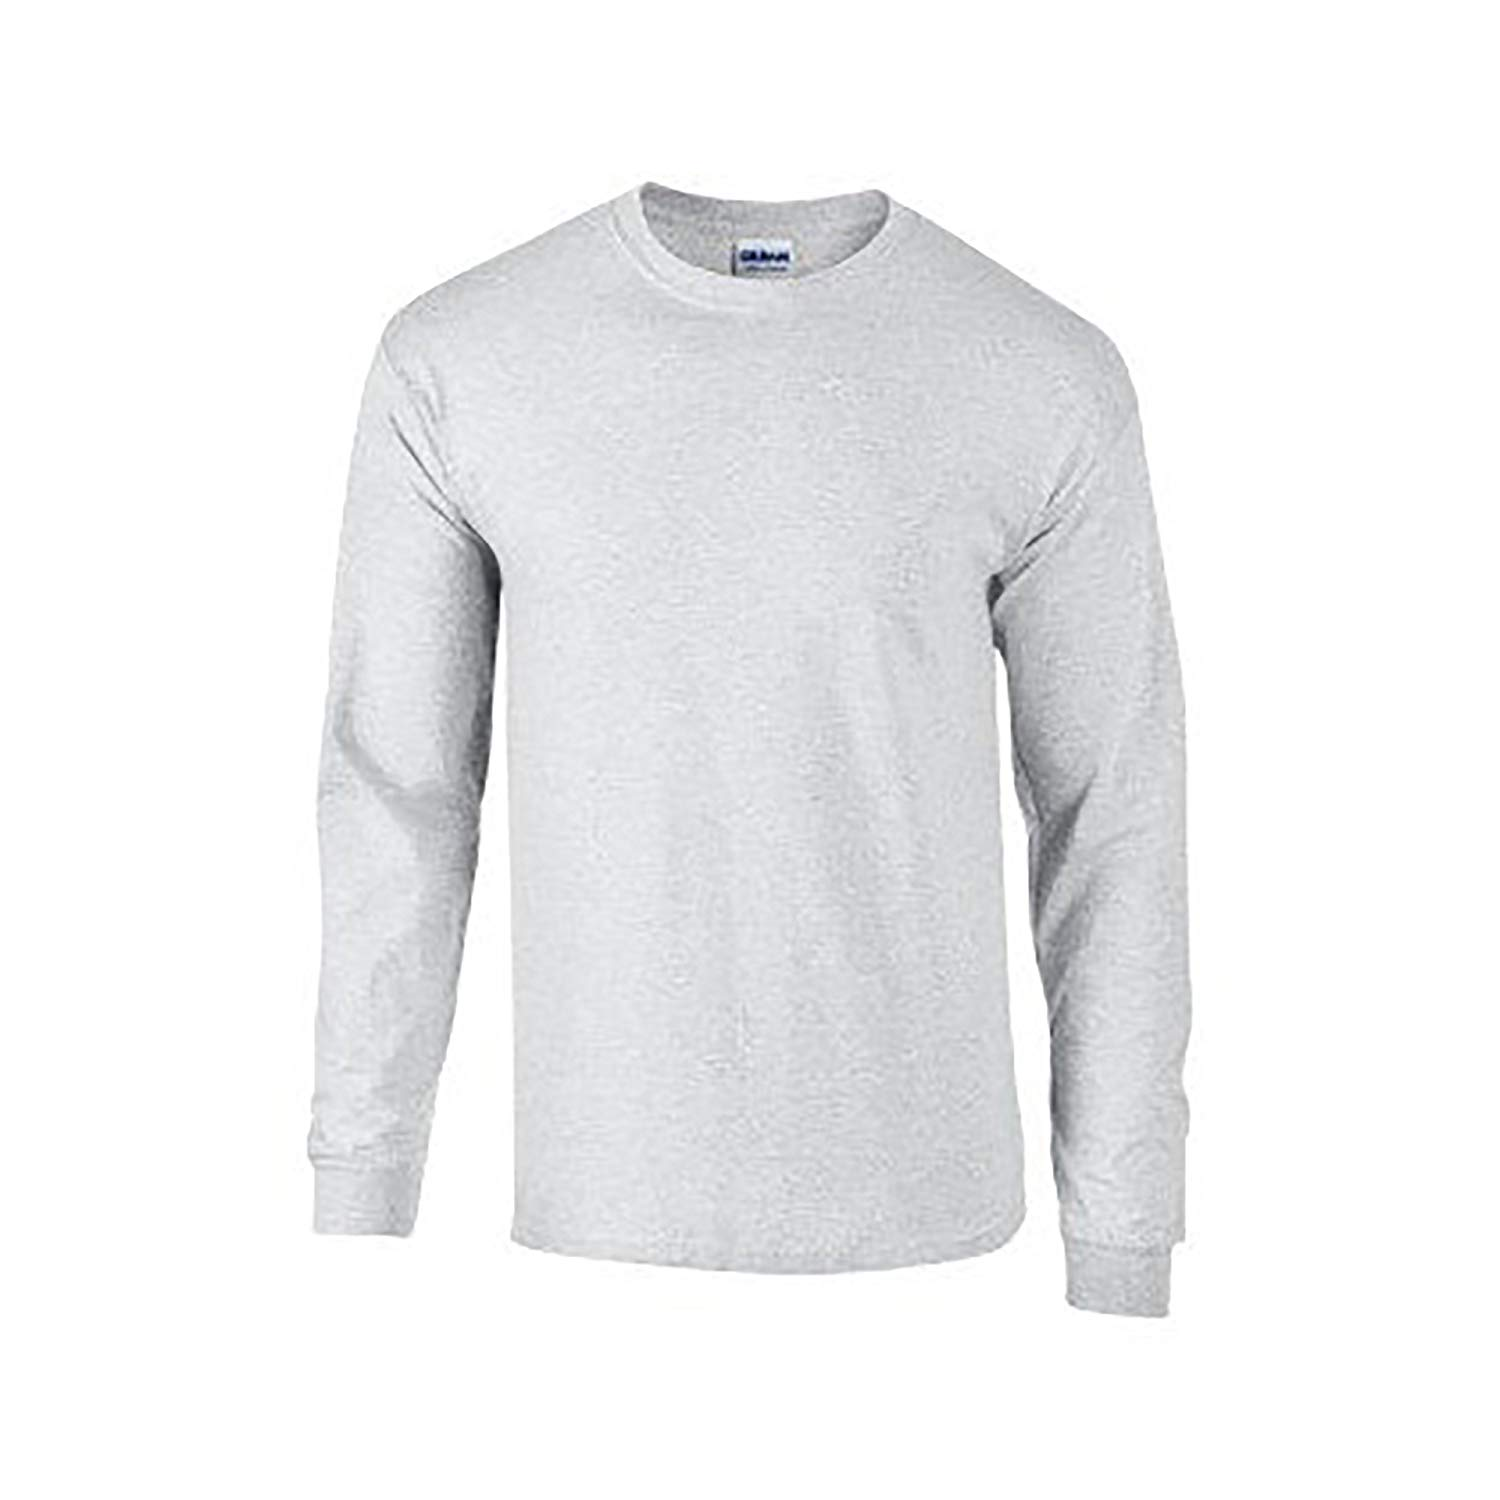 Long sleeve T-shirt amazon.com: gildan mens plain crew neck ultra cotton long sleeve t-shirt:  clothing CQOVBEJ